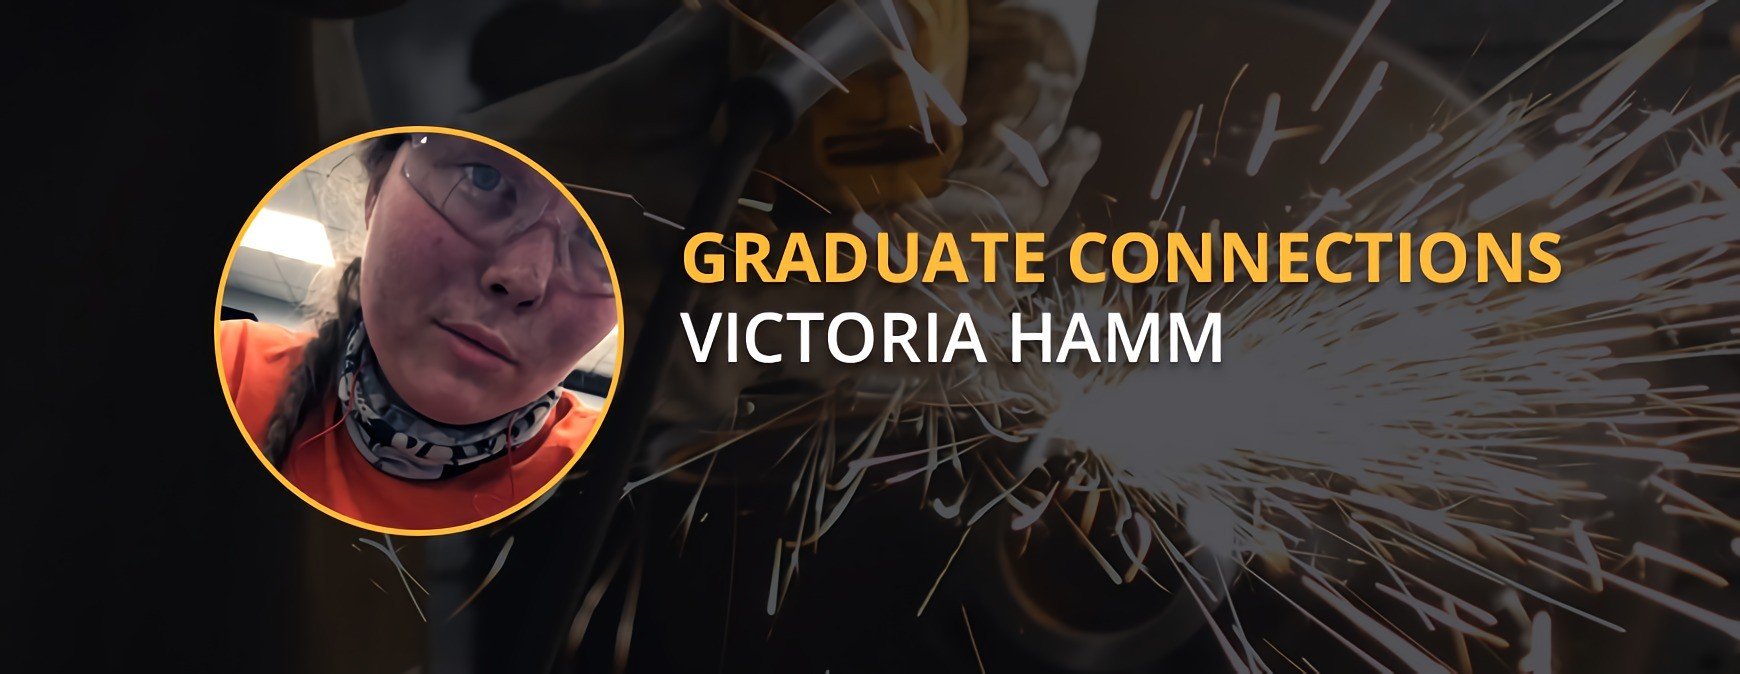 Victoria Hamm Graduate Connection